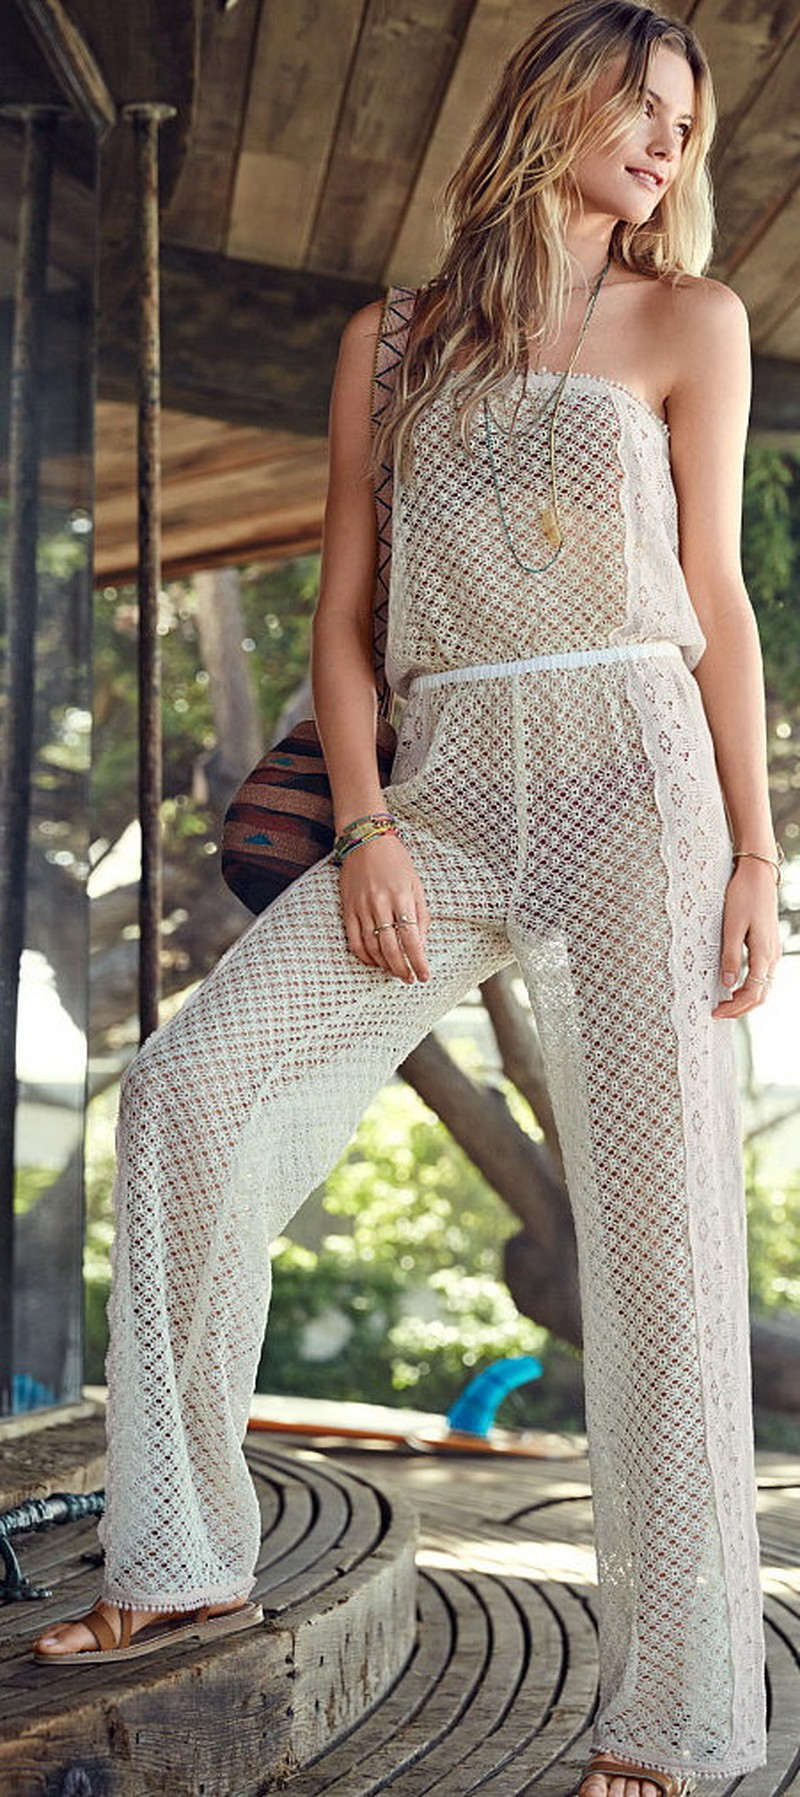 Sheer Lace Jumpsuit - 52 Beach Outfits - VS Swim 2015 @styleestate